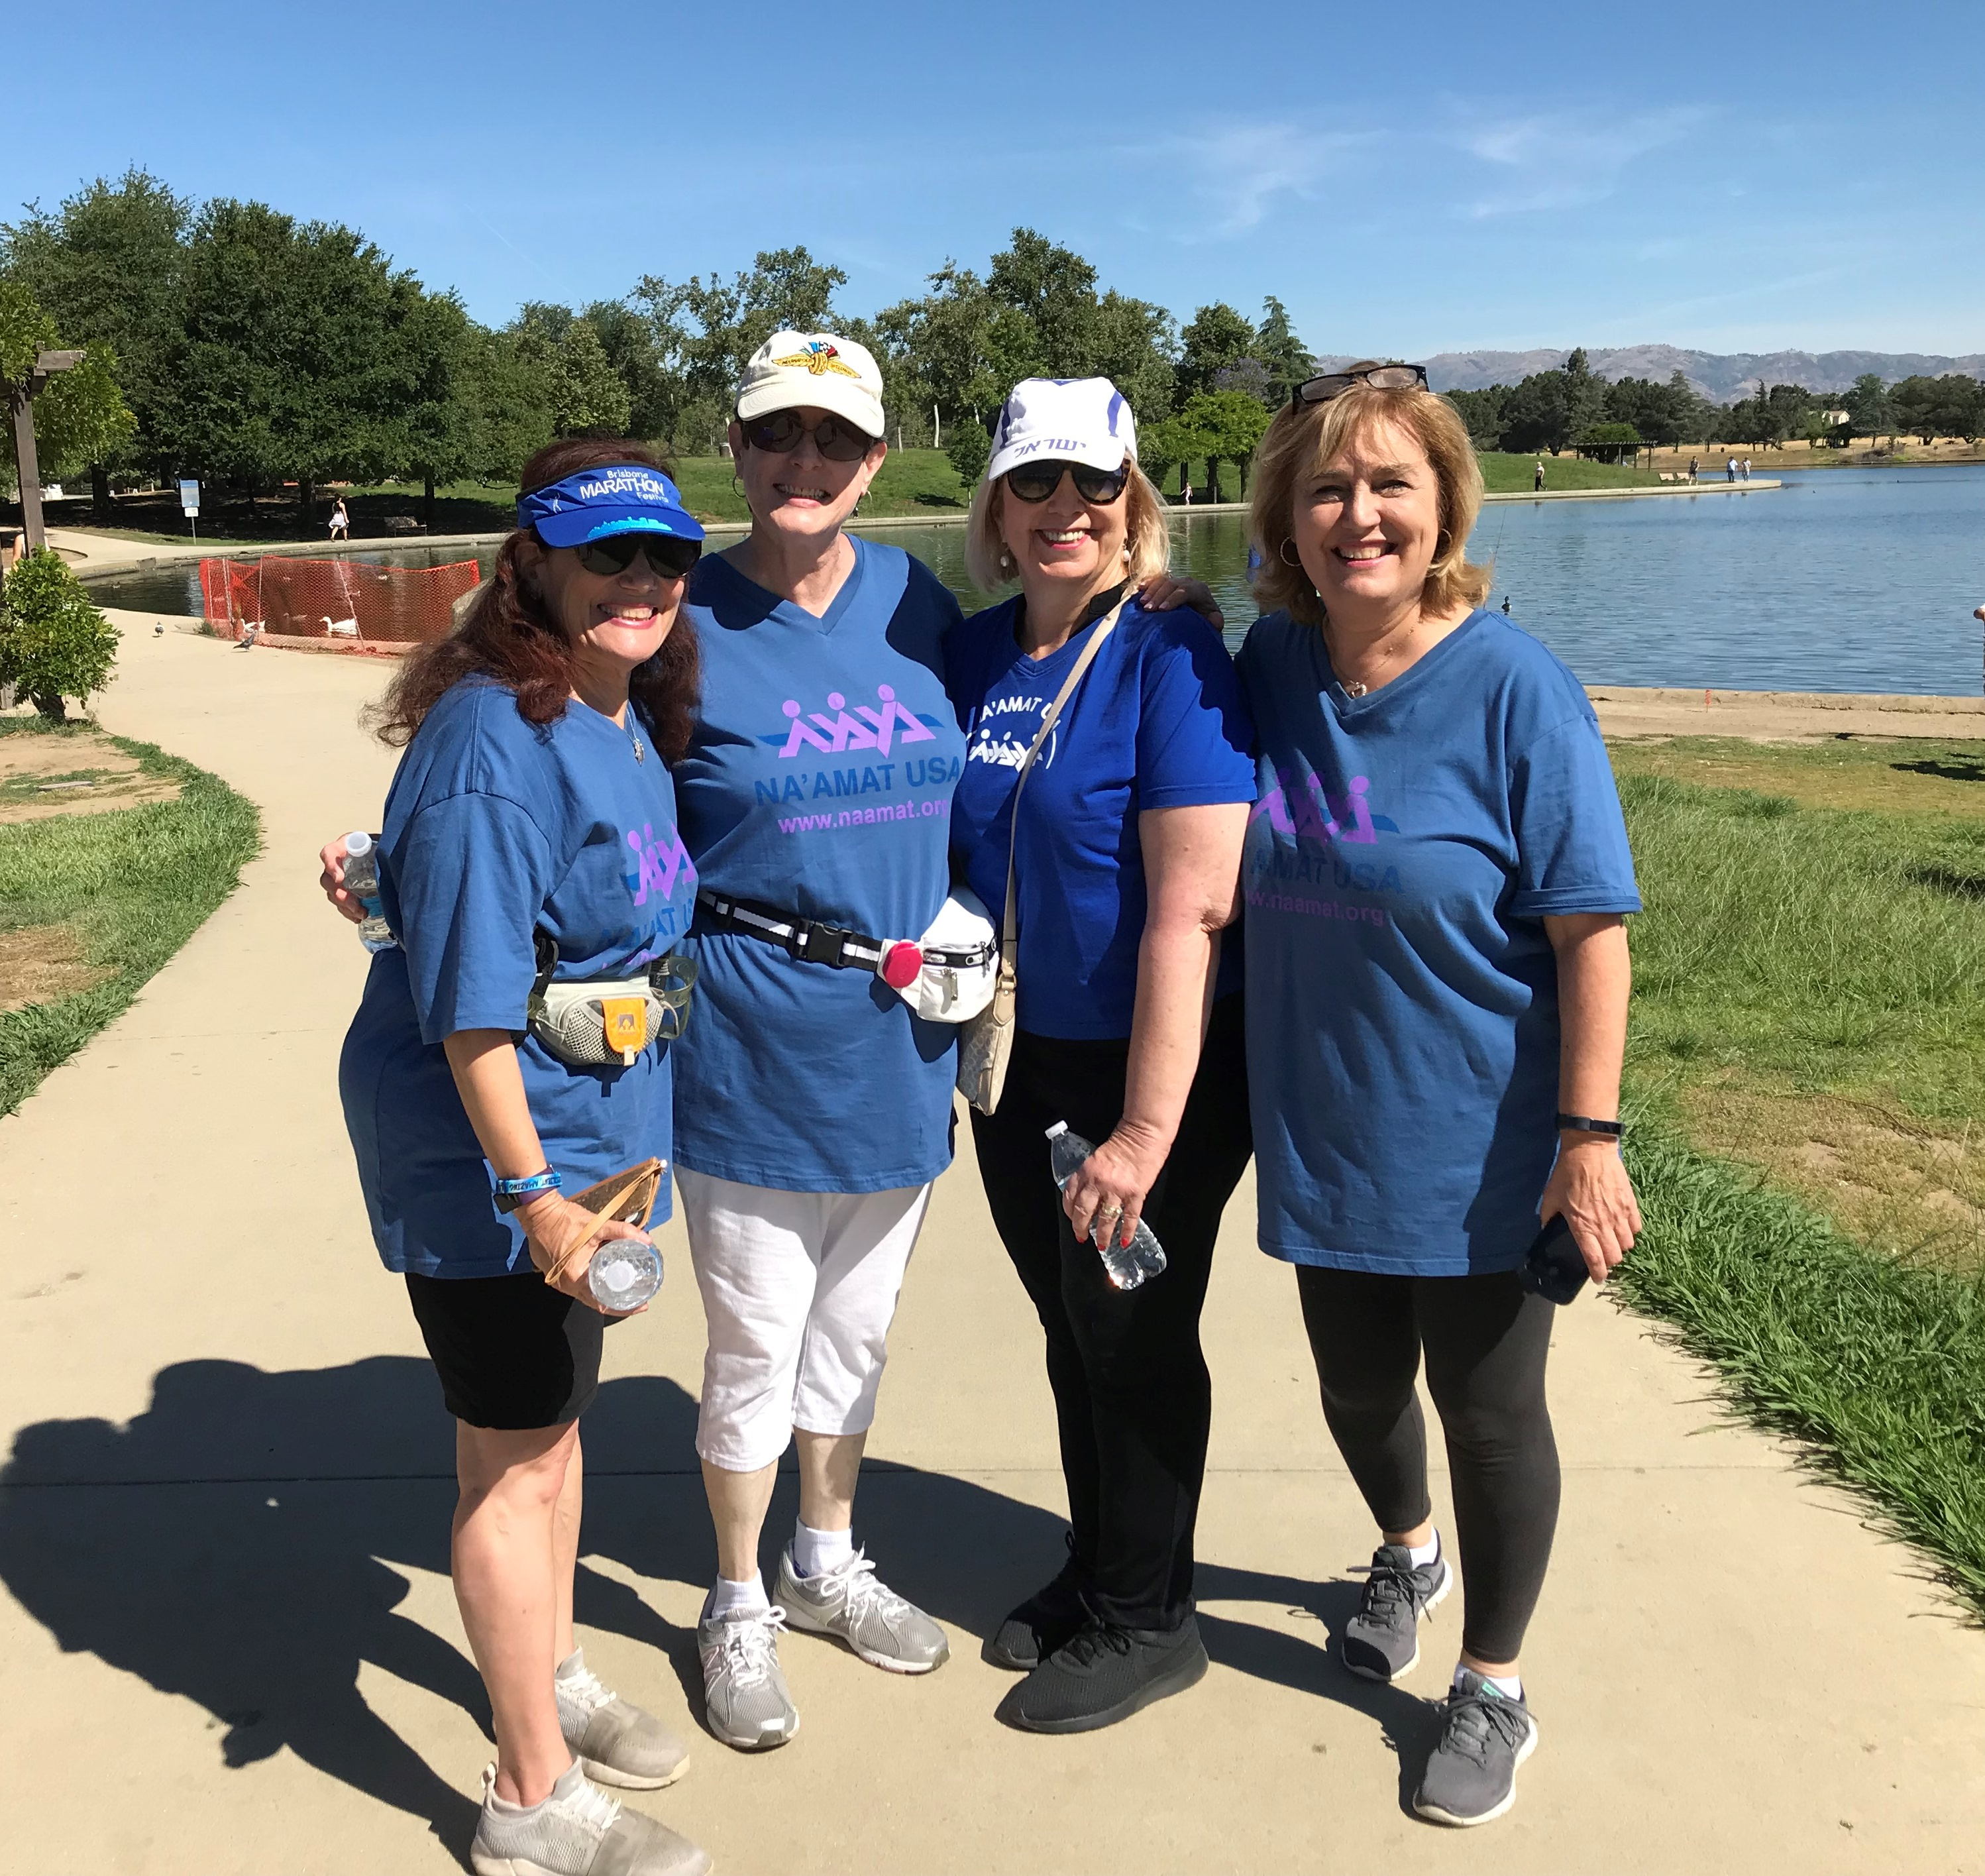 Jewish Women's Group walking together at the 5K